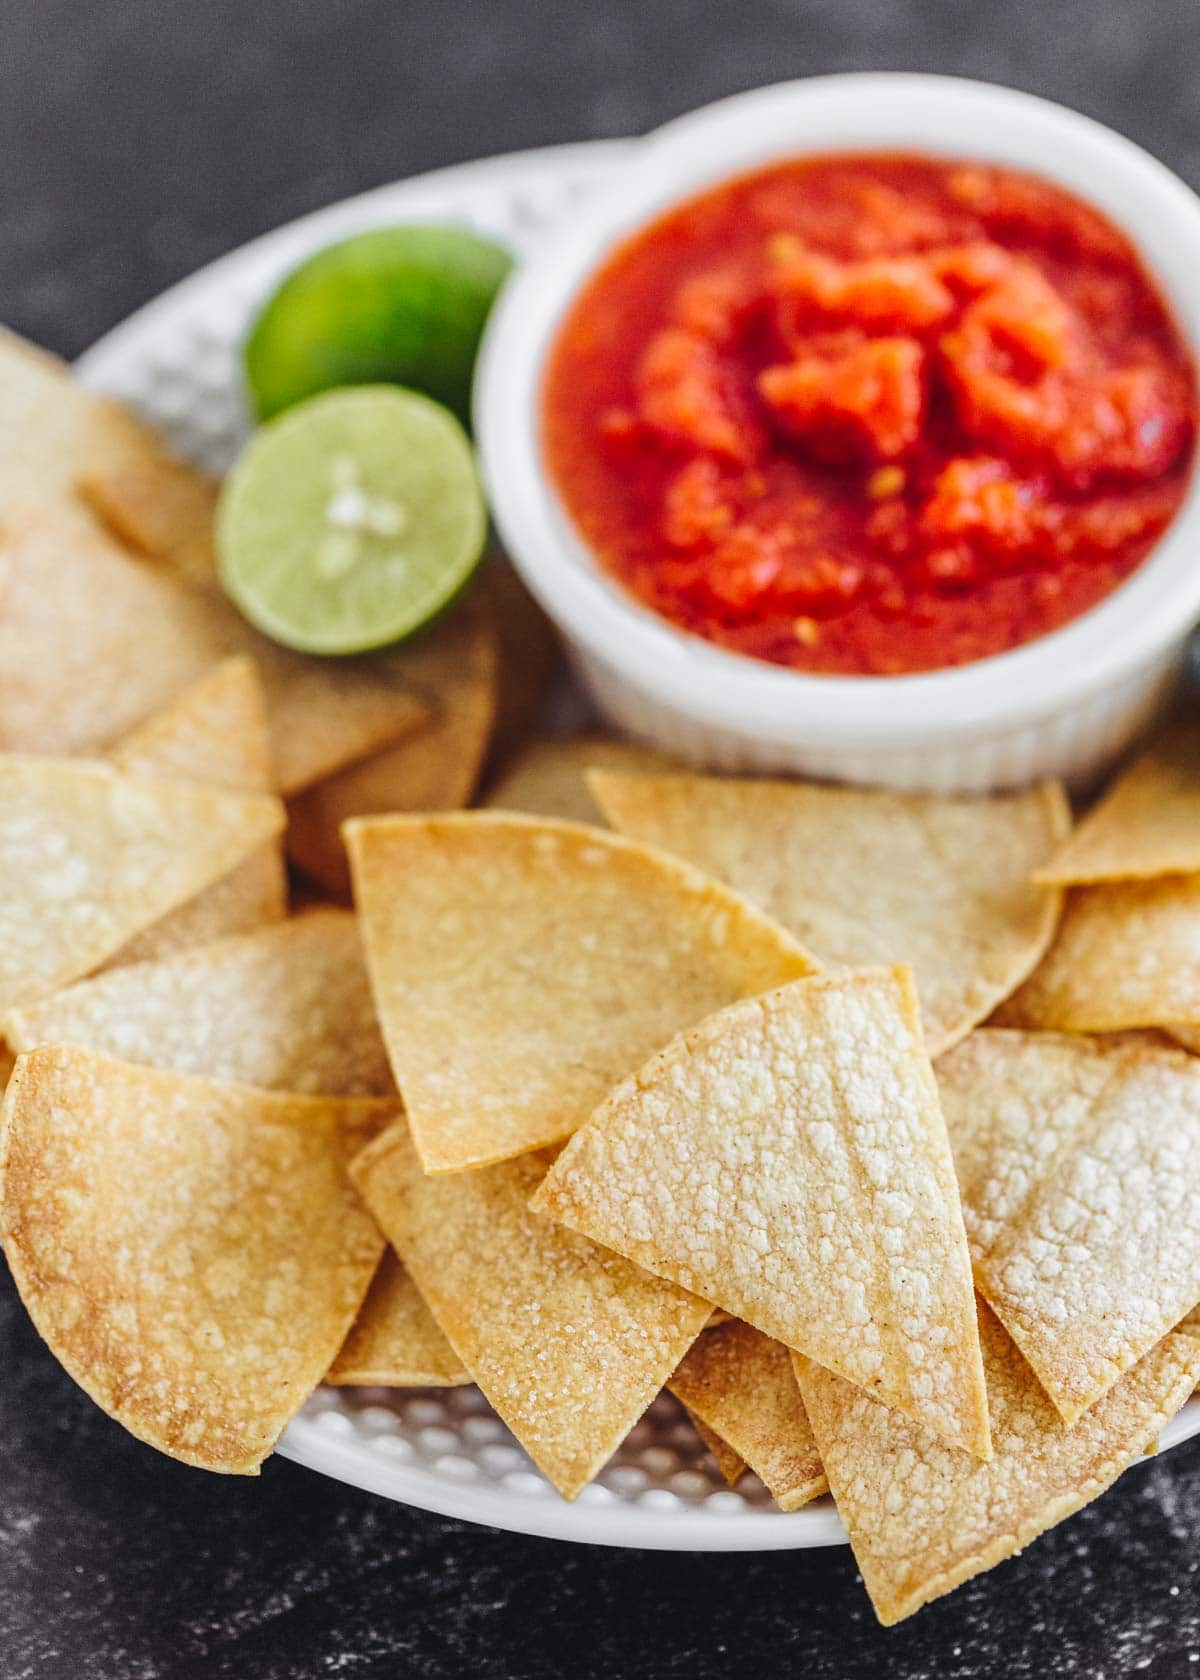 Oven baked tortilla chips on a plate with salsa